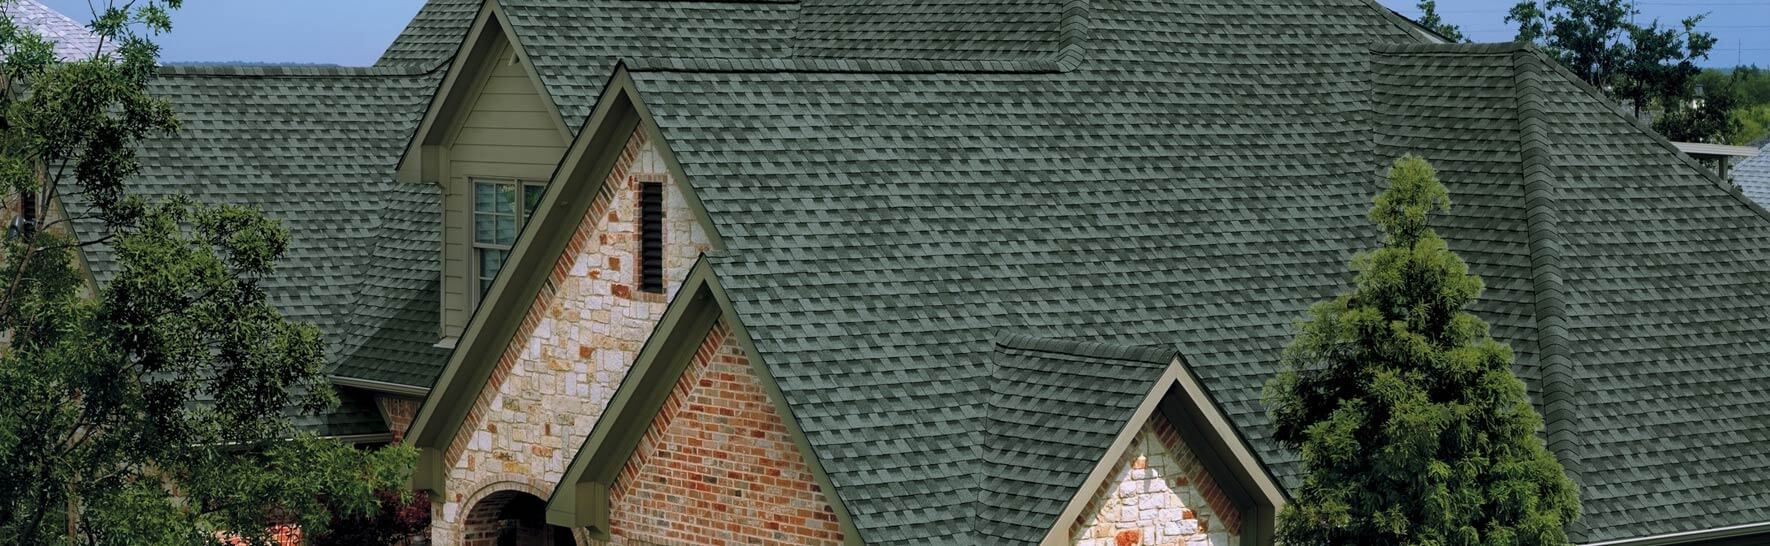 Are You Searching For Roof Repair In Rochester Ny Contact Cameron Roofing If You Have A Roof Design In Mind Let S Wo Roof Repair Roofing Green Roof Benefits